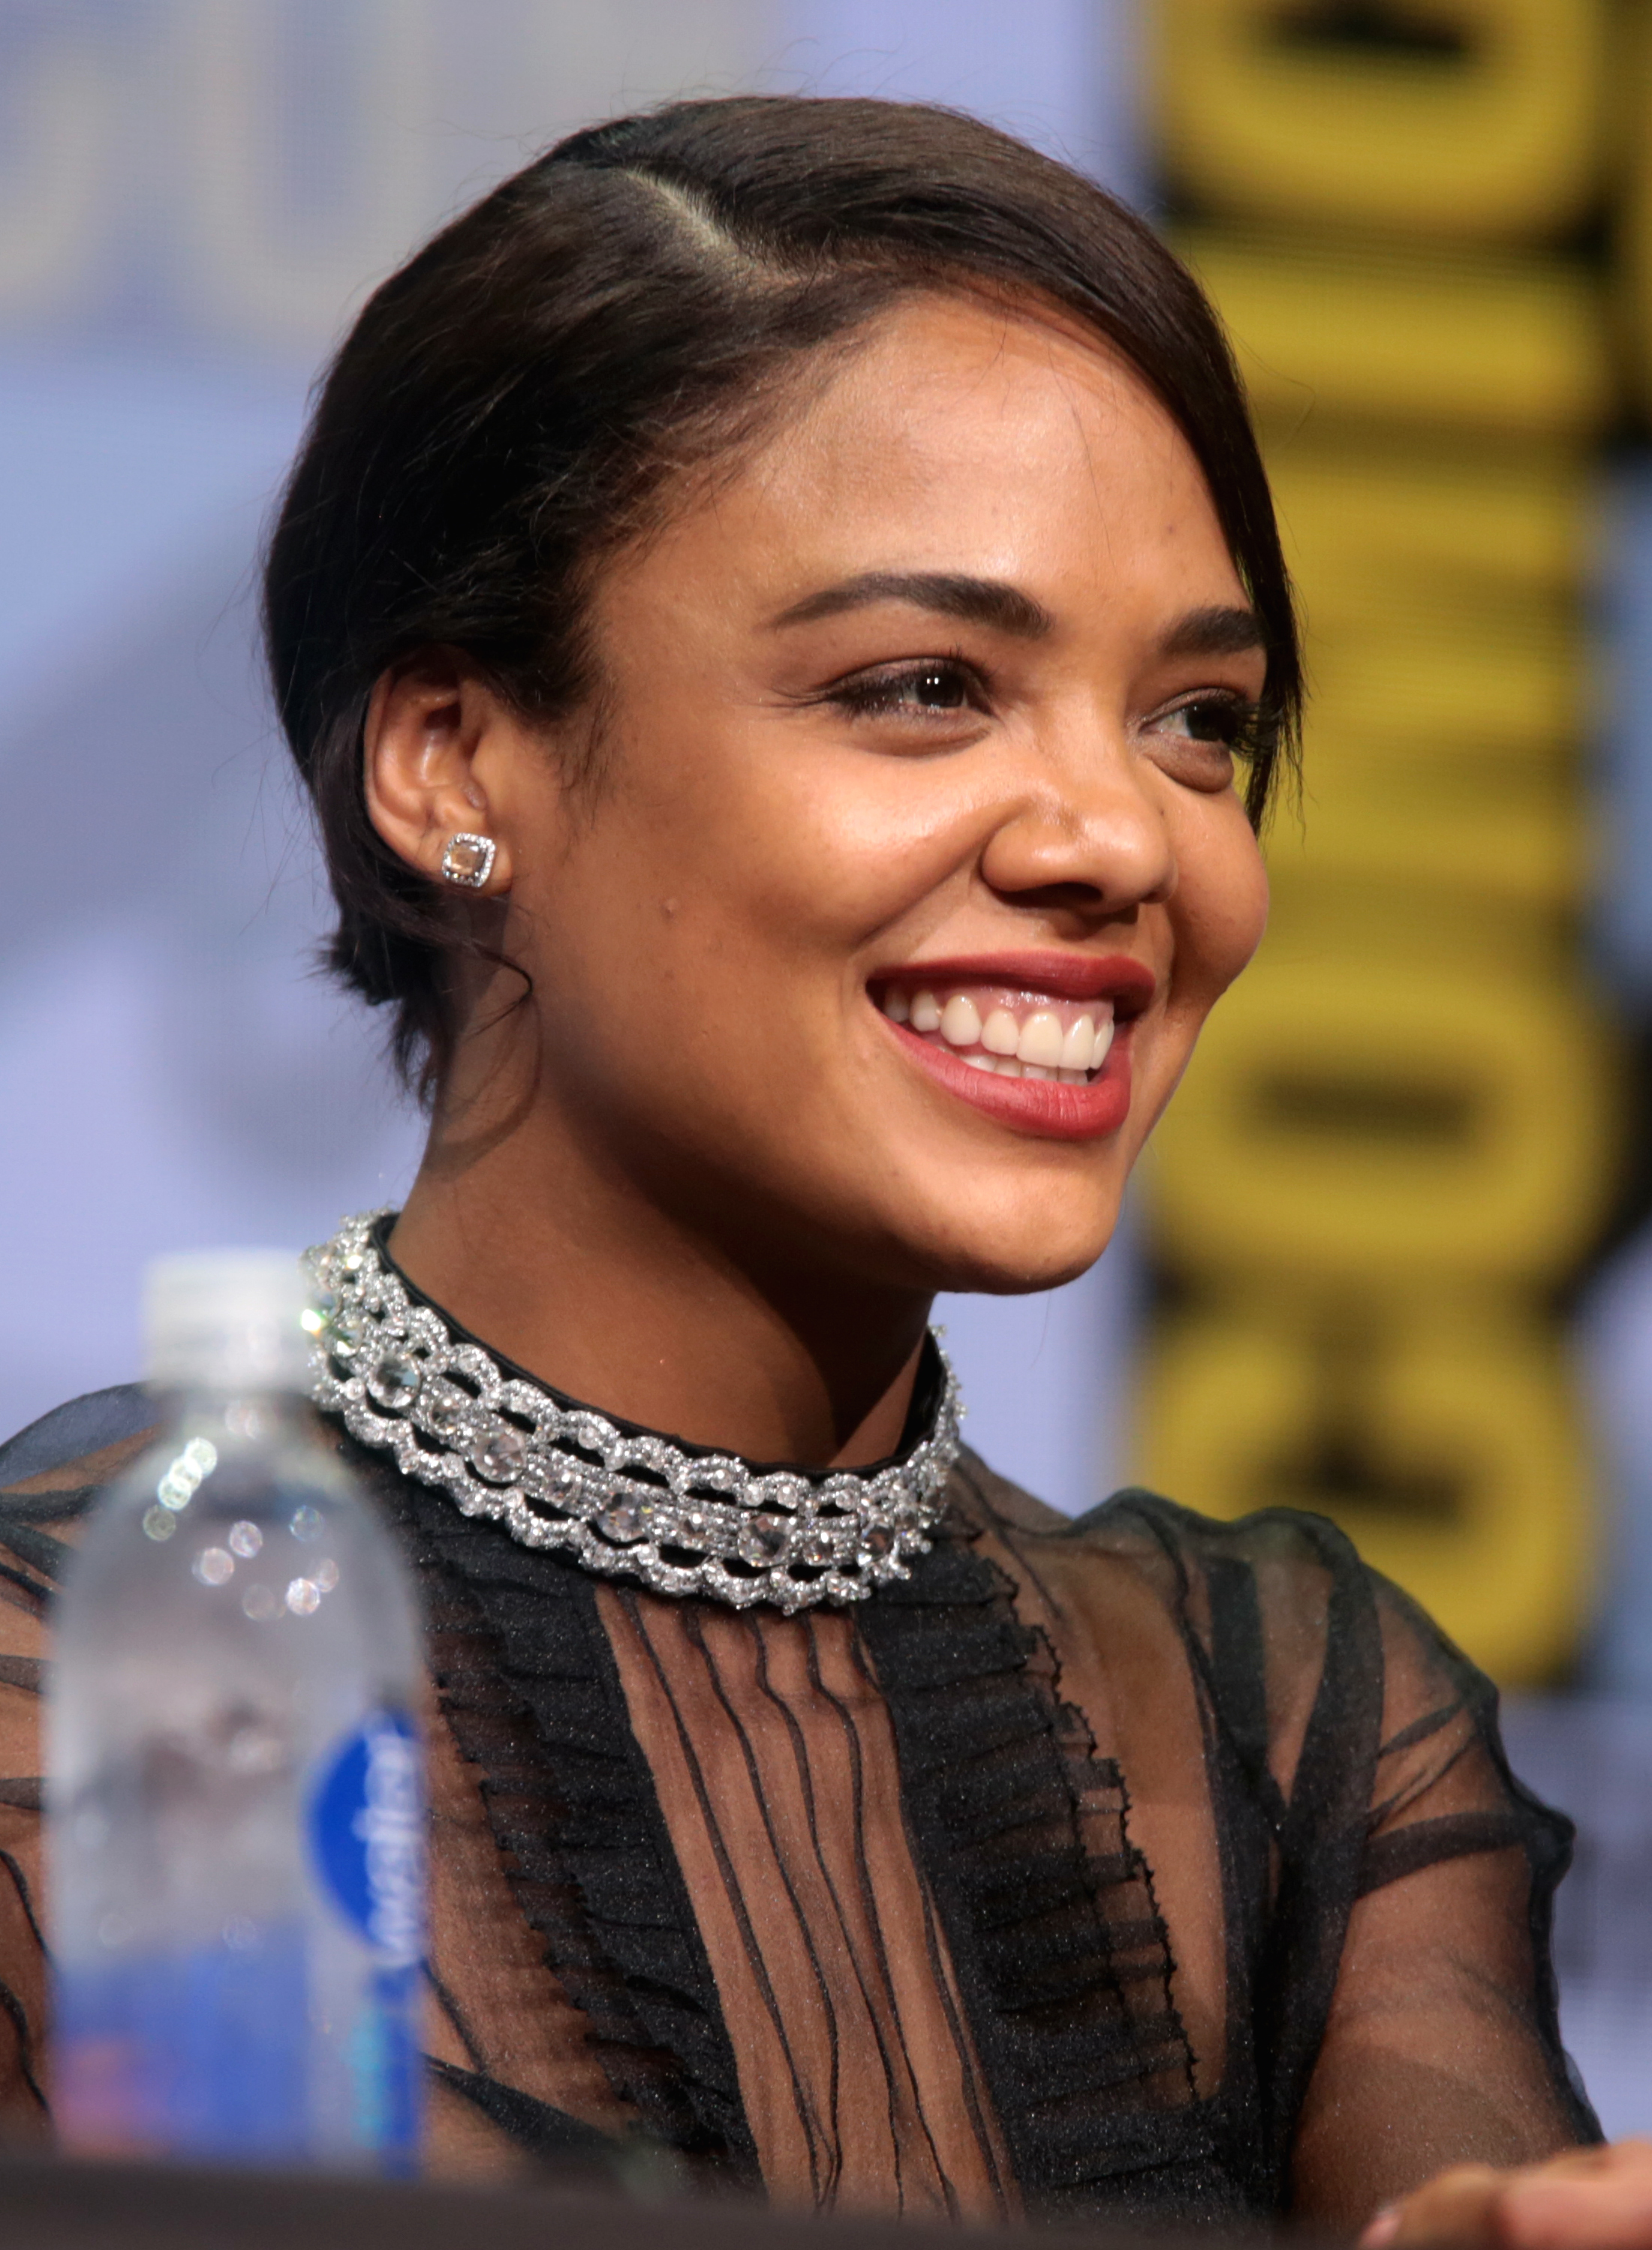 Tessa Thompson from the hit show Westworld